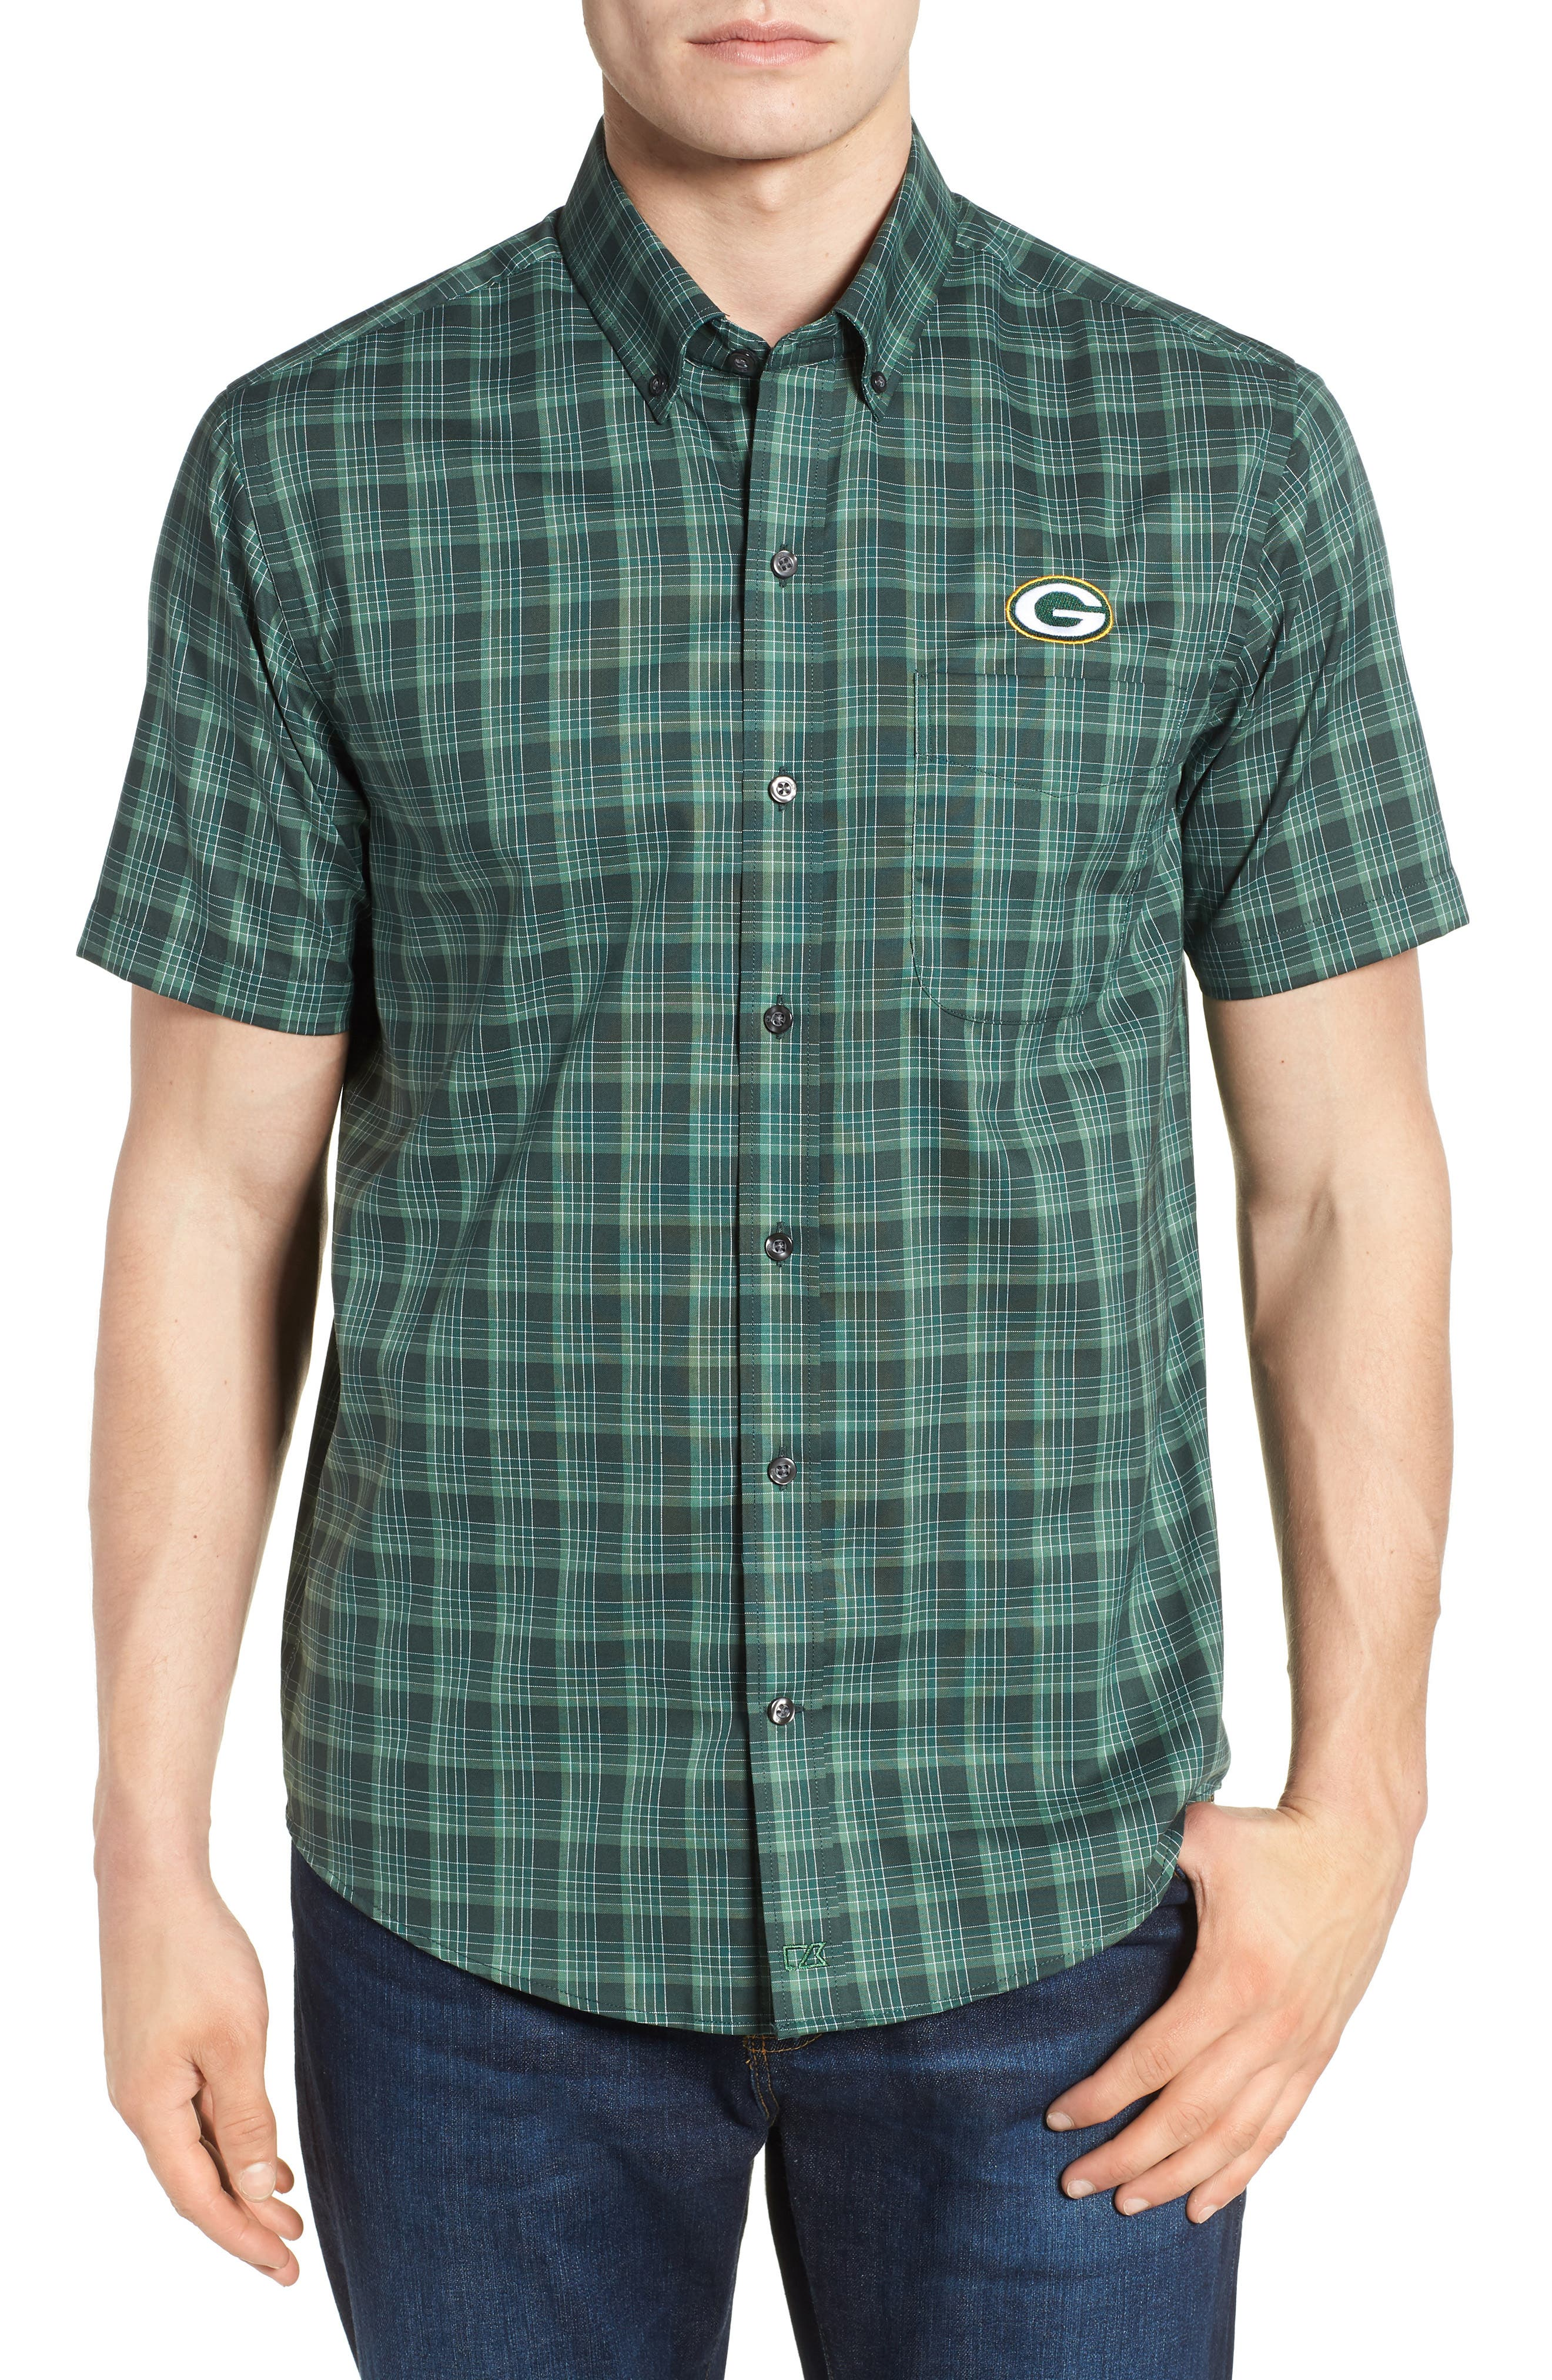 Manchester Great Sale For Sale Cutter & Buck Green Bay Packers - Fremont Regular Fit Check Sport Shirt Outlet Visit New bgNV88id